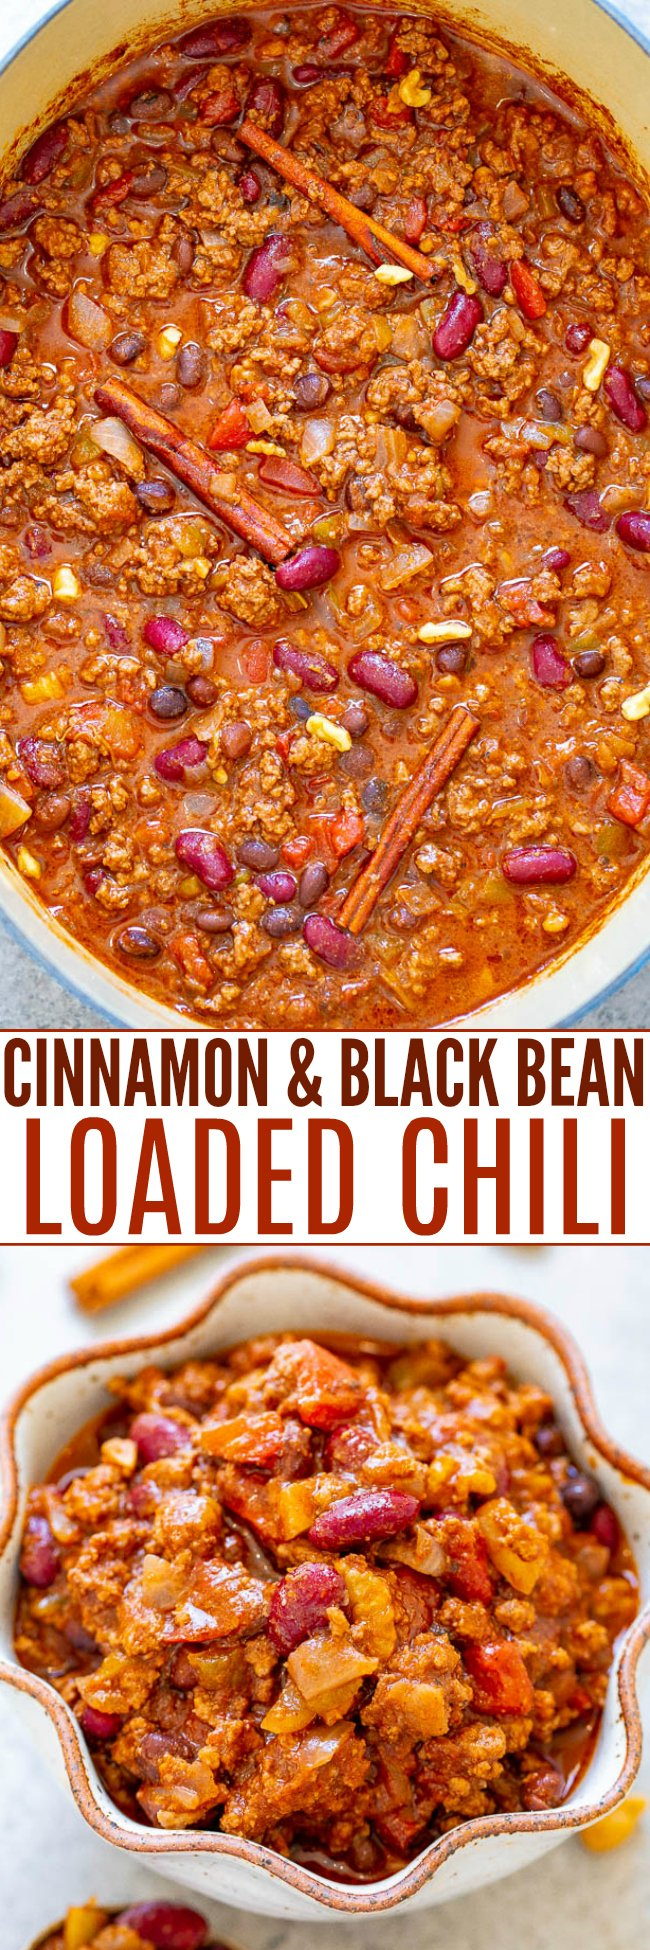 30-Minute Cinnamon and Black Bean Loaded Chili - If you're looking for a unique spin on classic chili, this EASY and DELICIOUS beef chili recipe is the one!! Hearty comfort food that's on the healthier side and perfect for chilly weather!!